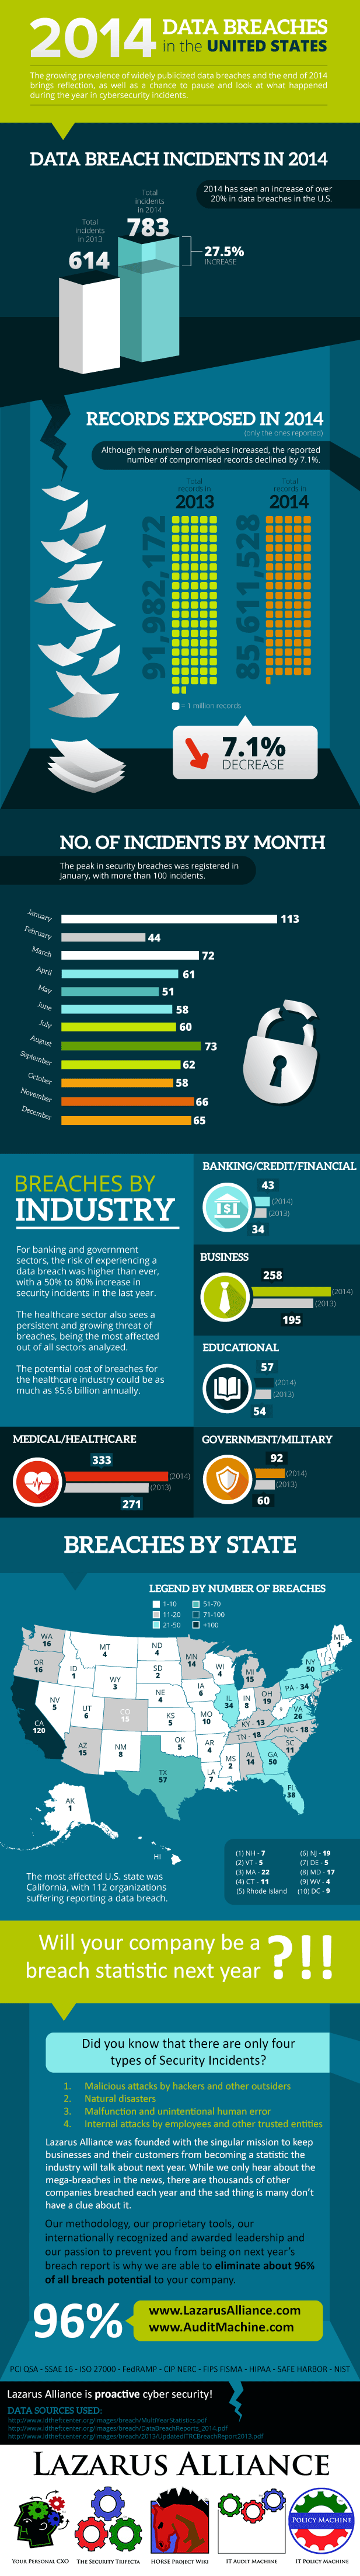 2014-US-Data-Breaches-Infographic